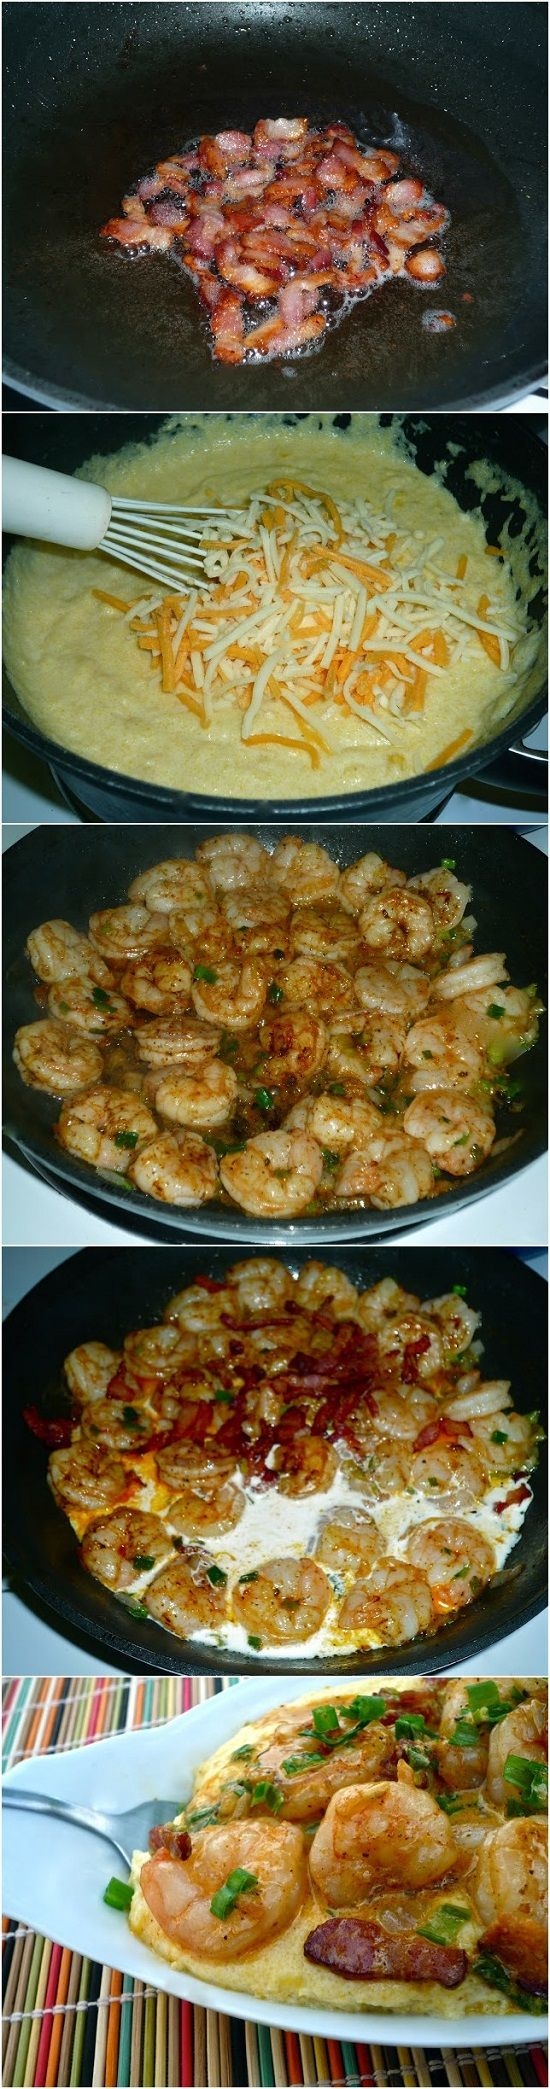 Cheesy Shrimp And Grits I'm Not A Huge Grits Fan But